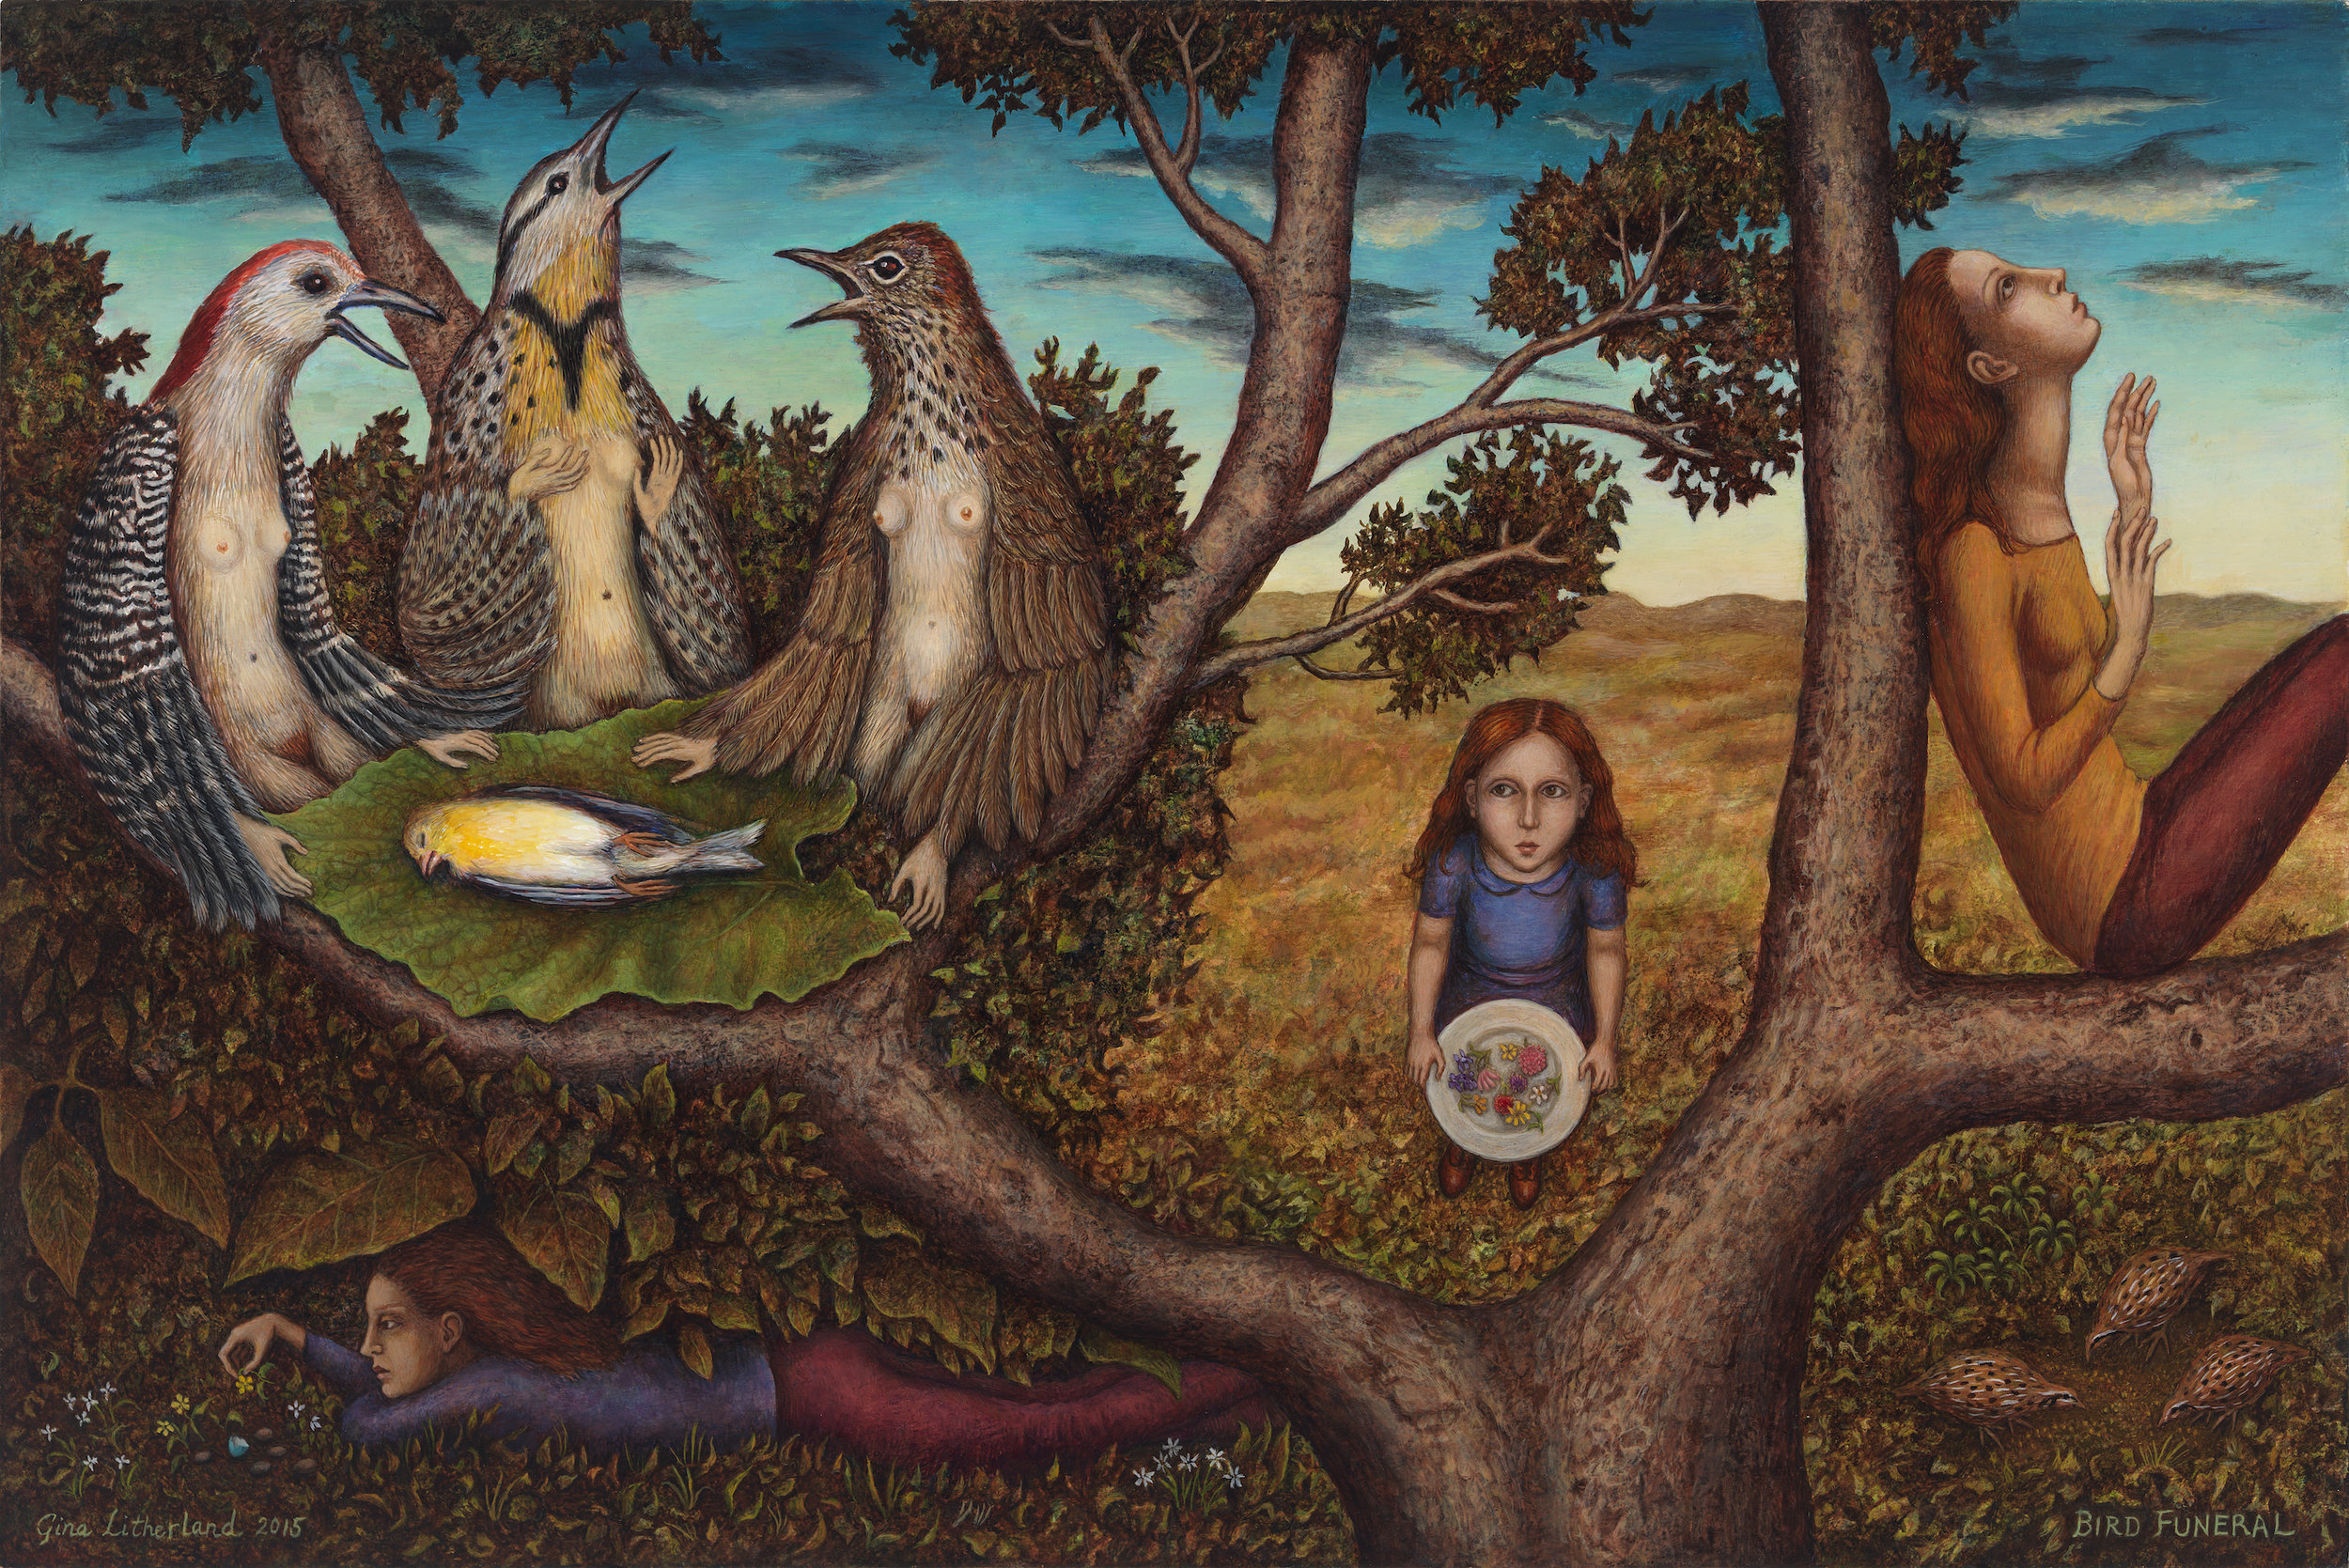 """Gina Litherland, """"Bird Funeral."""" Images courtesy of Wisconsin Academy of Arts, Sciences, and Letters."""